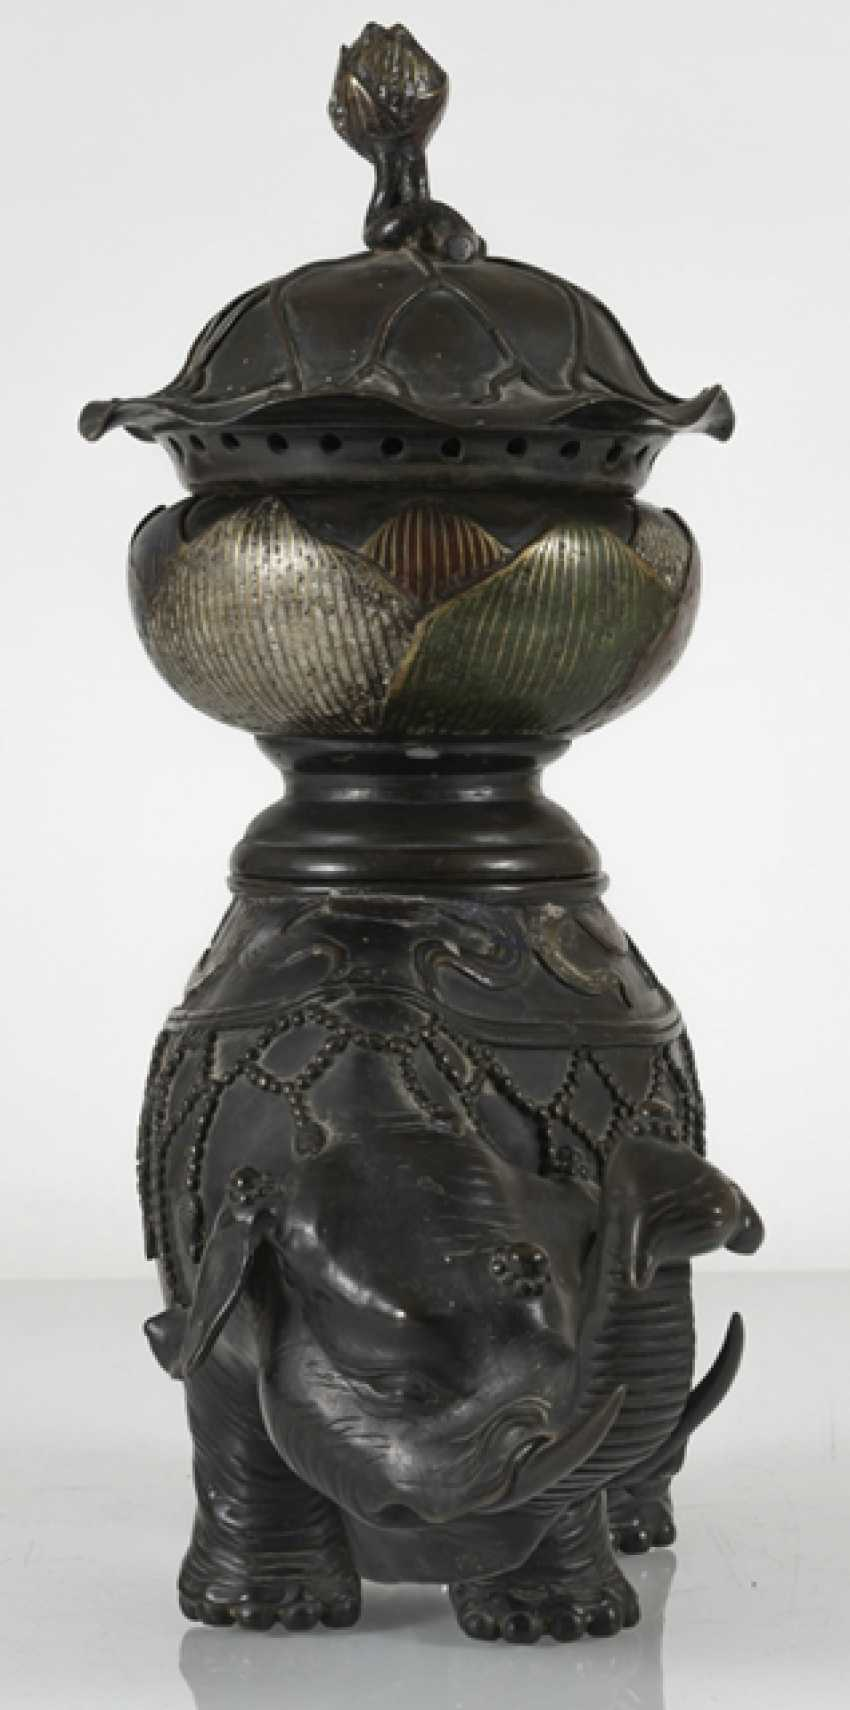 Koro made of Bronze in the Form of a Lotus leaf on the back of a standing elephant - photo 2